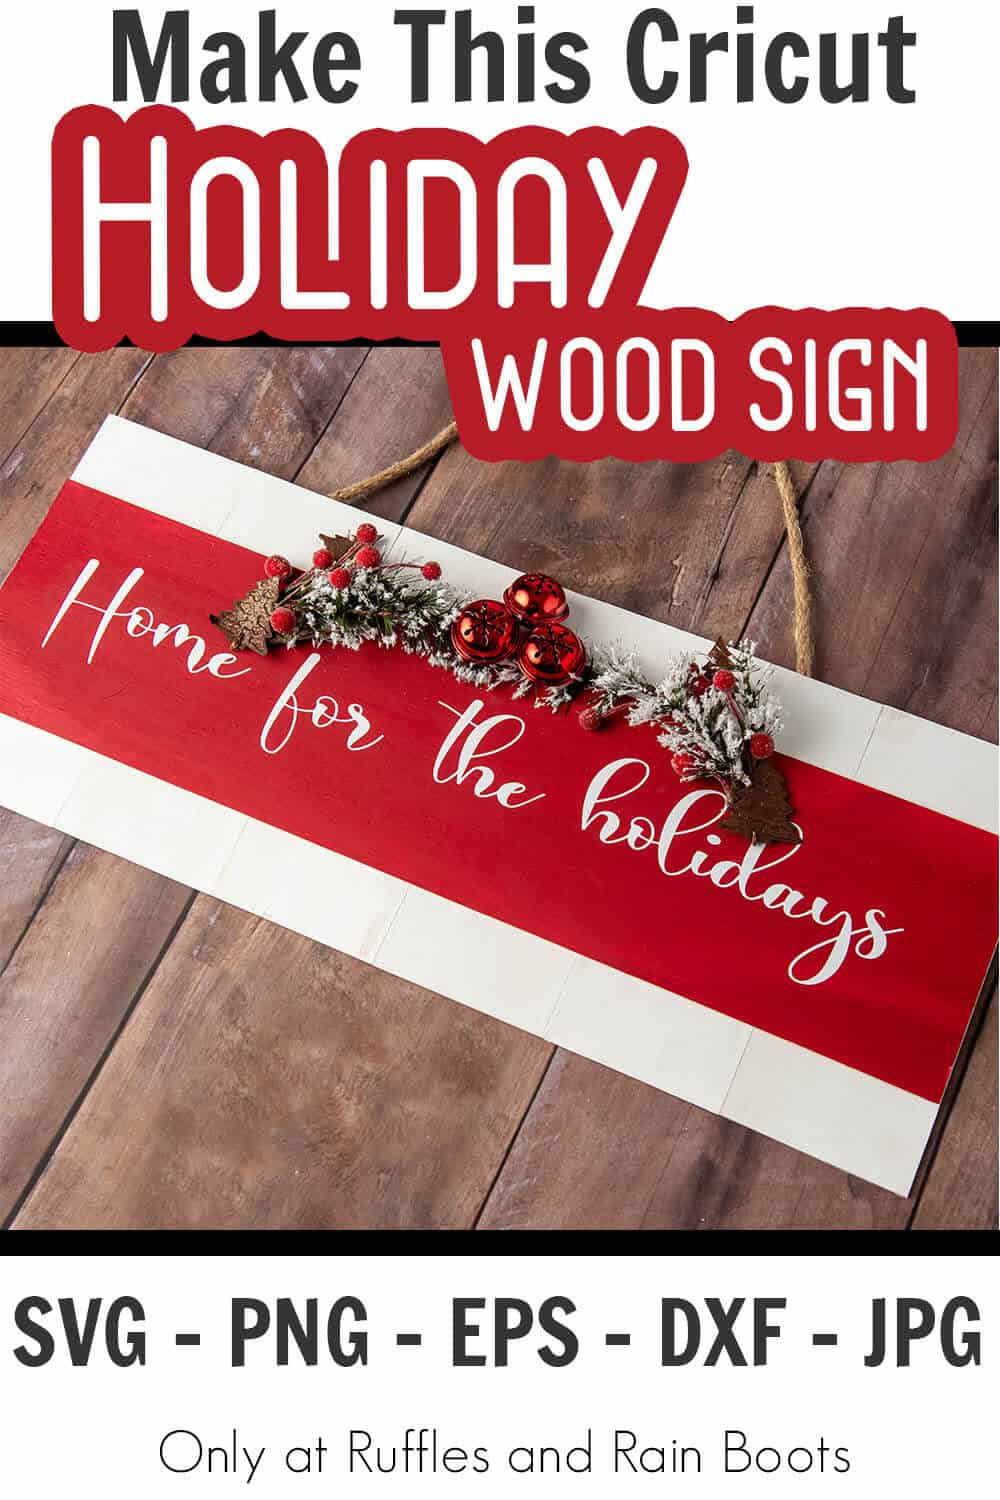 home for the holidays wood sign for christmas with text which reads make this cricut holiday wood sign svg png eps dxf jpg